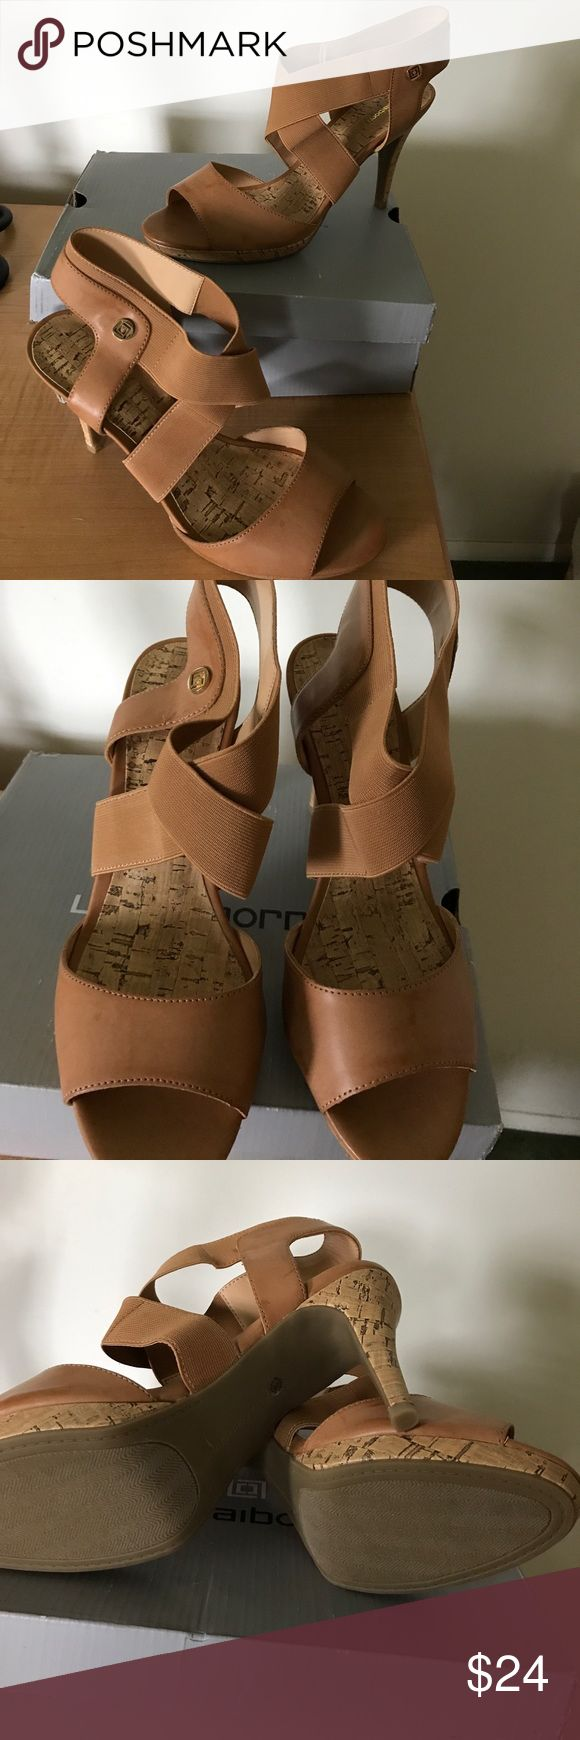 """Liz Claiborne Camel High Heels NIB sz9 Liz Claiborne""""LC Dapper"""" Camel colored high heels with faux cork foot bed and heel. Size 9 never used. Feel free to contact me with questions, will consider reasonable offers, no trades. PLEASE READ MY COMMENTS FOR DISCOUNT 😊 Liz Claiborne Shoes Heels"""